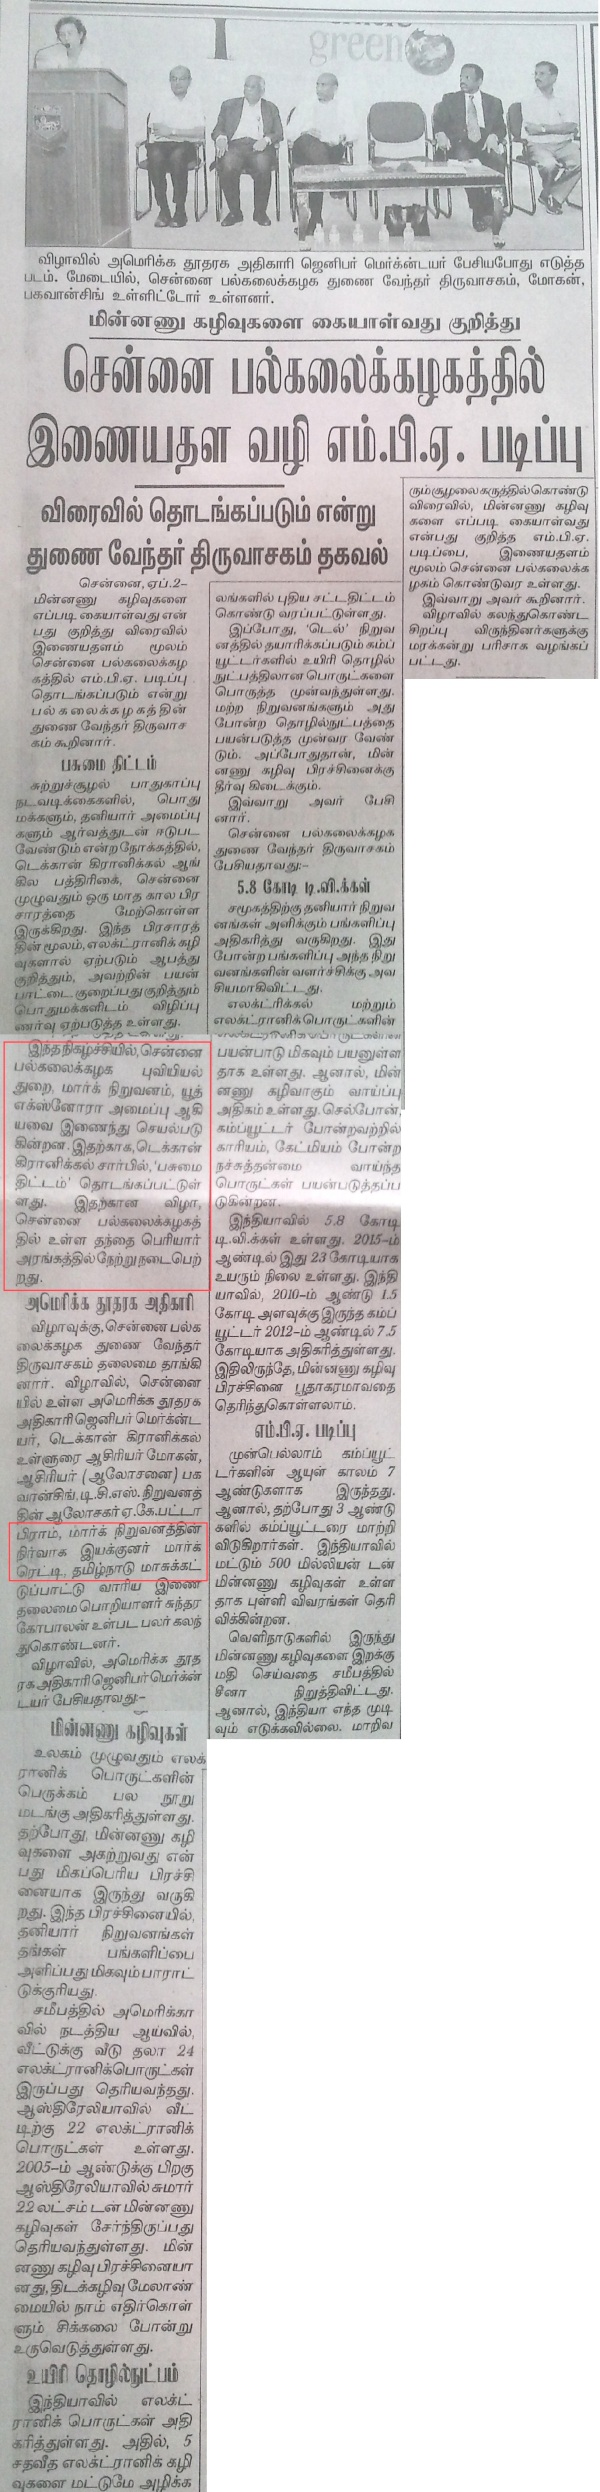 Online MBA course,e-waste management,Madras University,Daily Thanthi,Marg Swarnabhoomi,Marg Limited